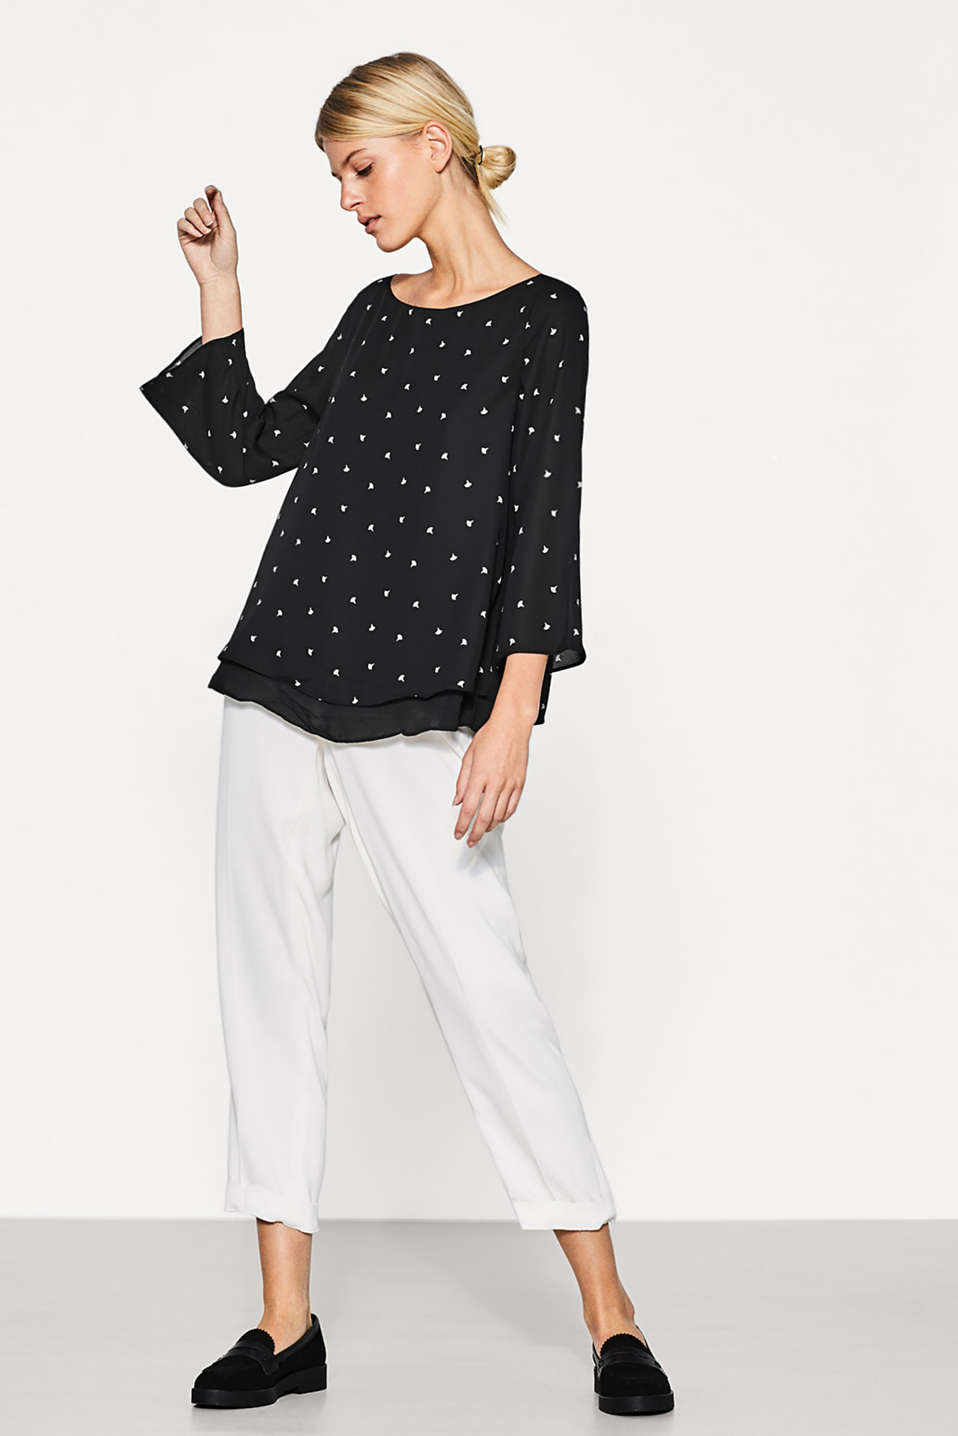 Flowing, layered blouse with a print